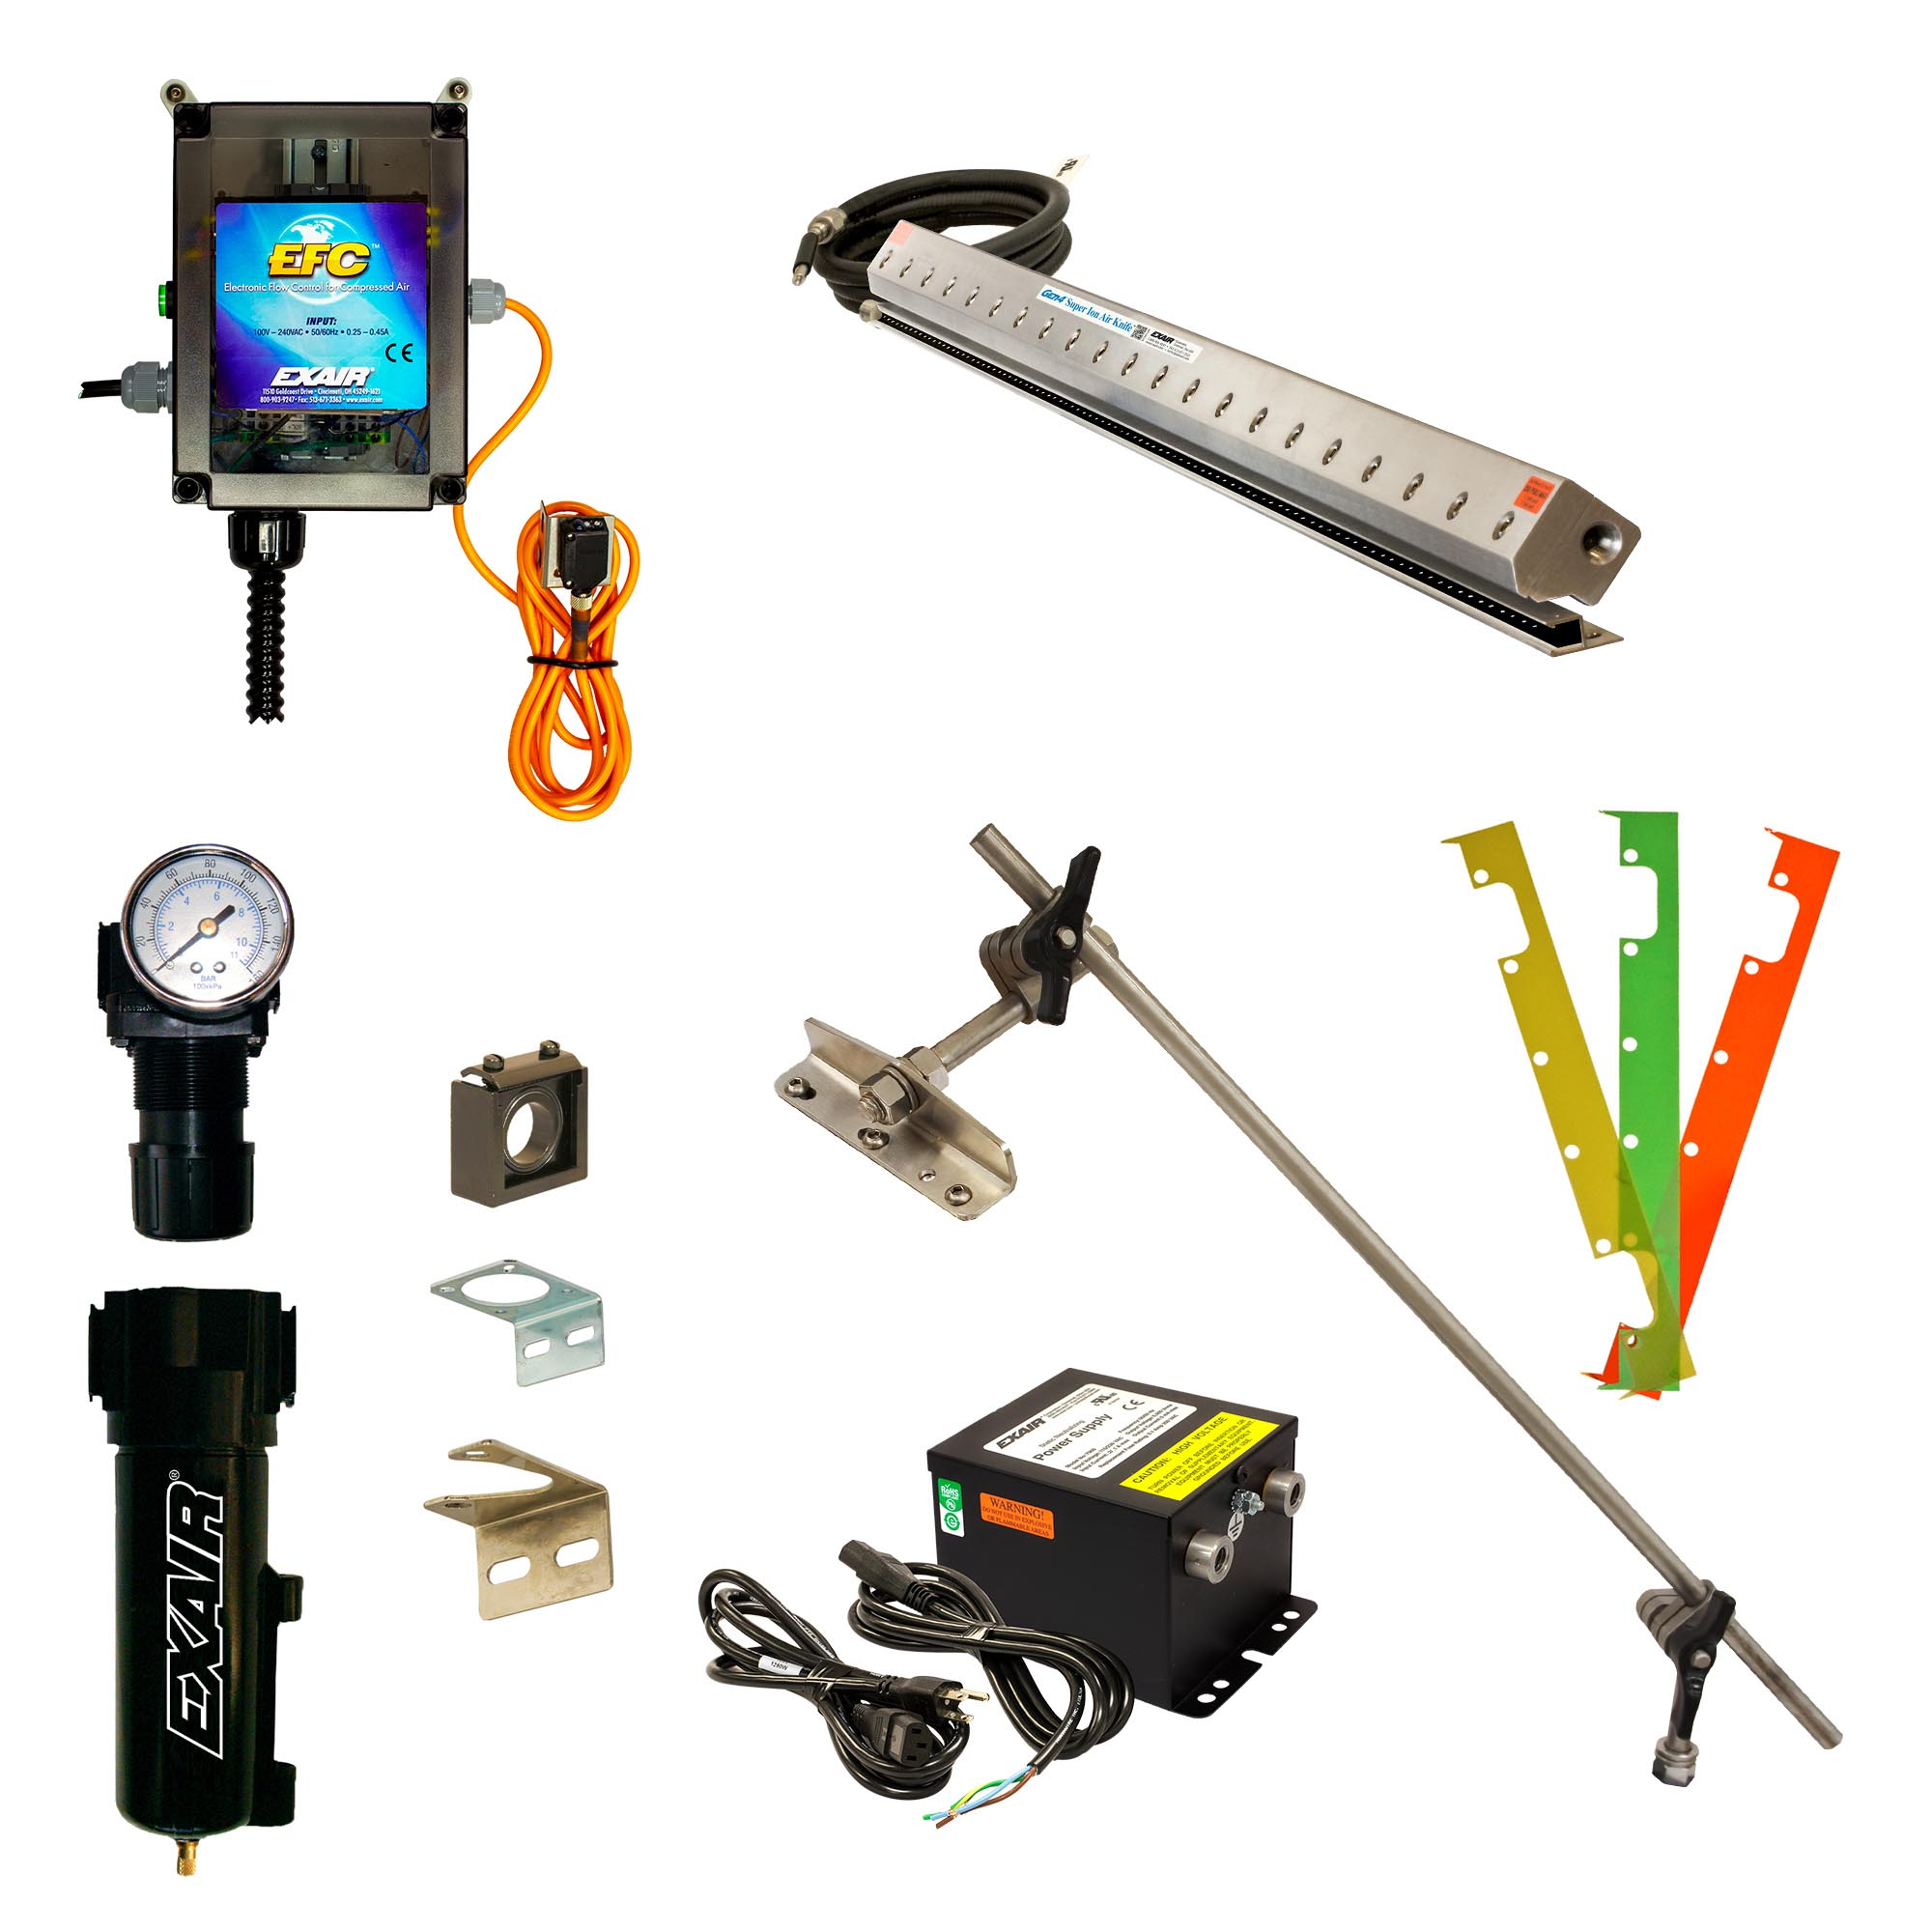 Gen4 Deluxe Super Ion Air Knife Kits include power supply, shim set, EFC, Universal Mounting System, filter separator, and pressure regulator (with coupler)